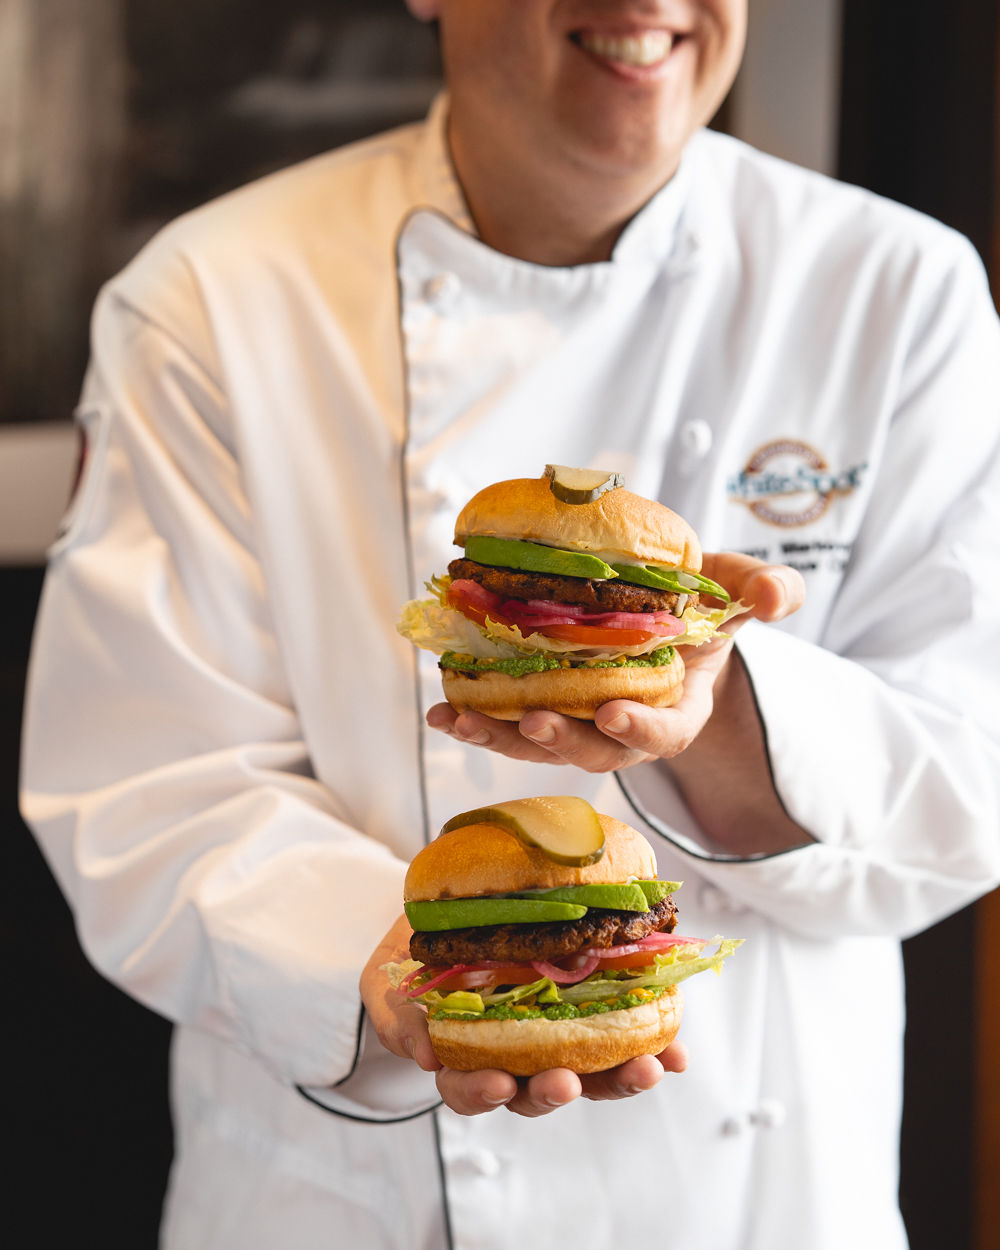 wHITE SPOT INTRODUCESPLANT-BASED BEYOND BURGER PATTY - April 11, 2019Beloved BC restaurant chain White Spot is going above and Beyond to give its guests even more variety this spring by adding the 100%-plant-based Beyond Burger® patty to its menu of mouthwatering signature burgers and entrées beginning Monday, April 15.Available at all full-service White Spot restaurants in BC and Alberta, the hearty four-ounce chargrilled Beyond Meat patty will be showcased in the new Avocado Beyond Burger™. The fully-composed burger features fresh avocado, pickled onions, roasted corn, crisp lettuce, vine-ripened tomatoes, jalapeño ranch and edamame hummus, and is served with a choice of Caesar salad, The Spot's salad, or creamy coleslaw and 'endless' signature Kennebec fries.